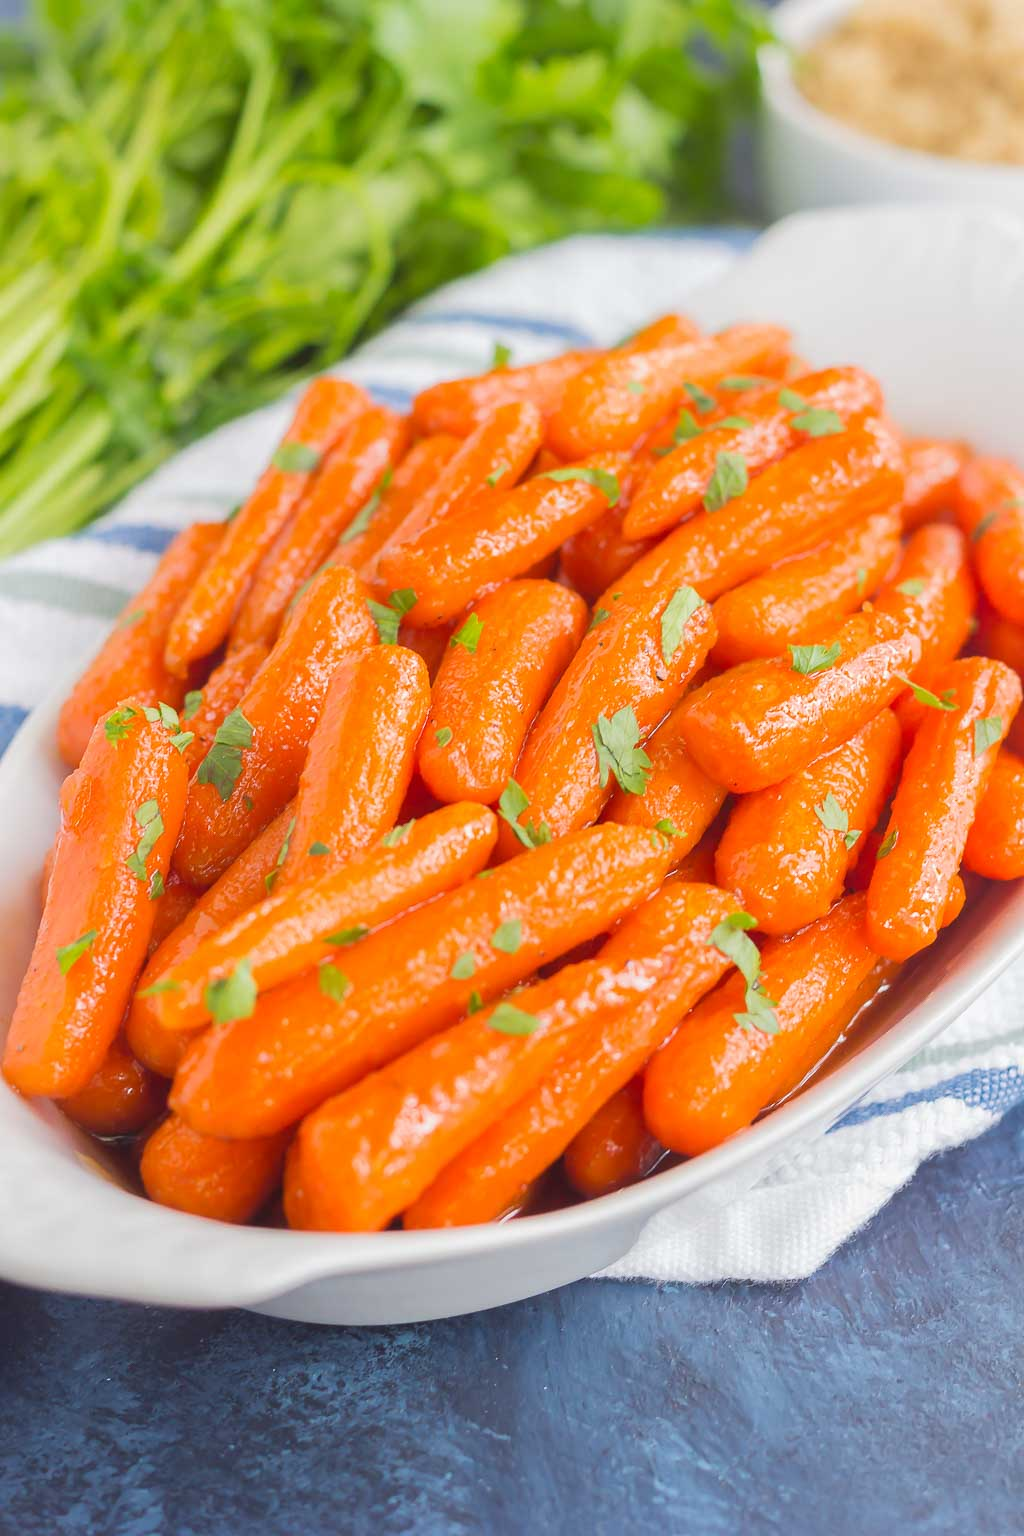 These Maple Brown Sugar Glazed Carrots are simple to prepare and full of warm flavors. The brown sugar and maple syrup creates a sweet glaze that coats the carrots with a welcoming taste!